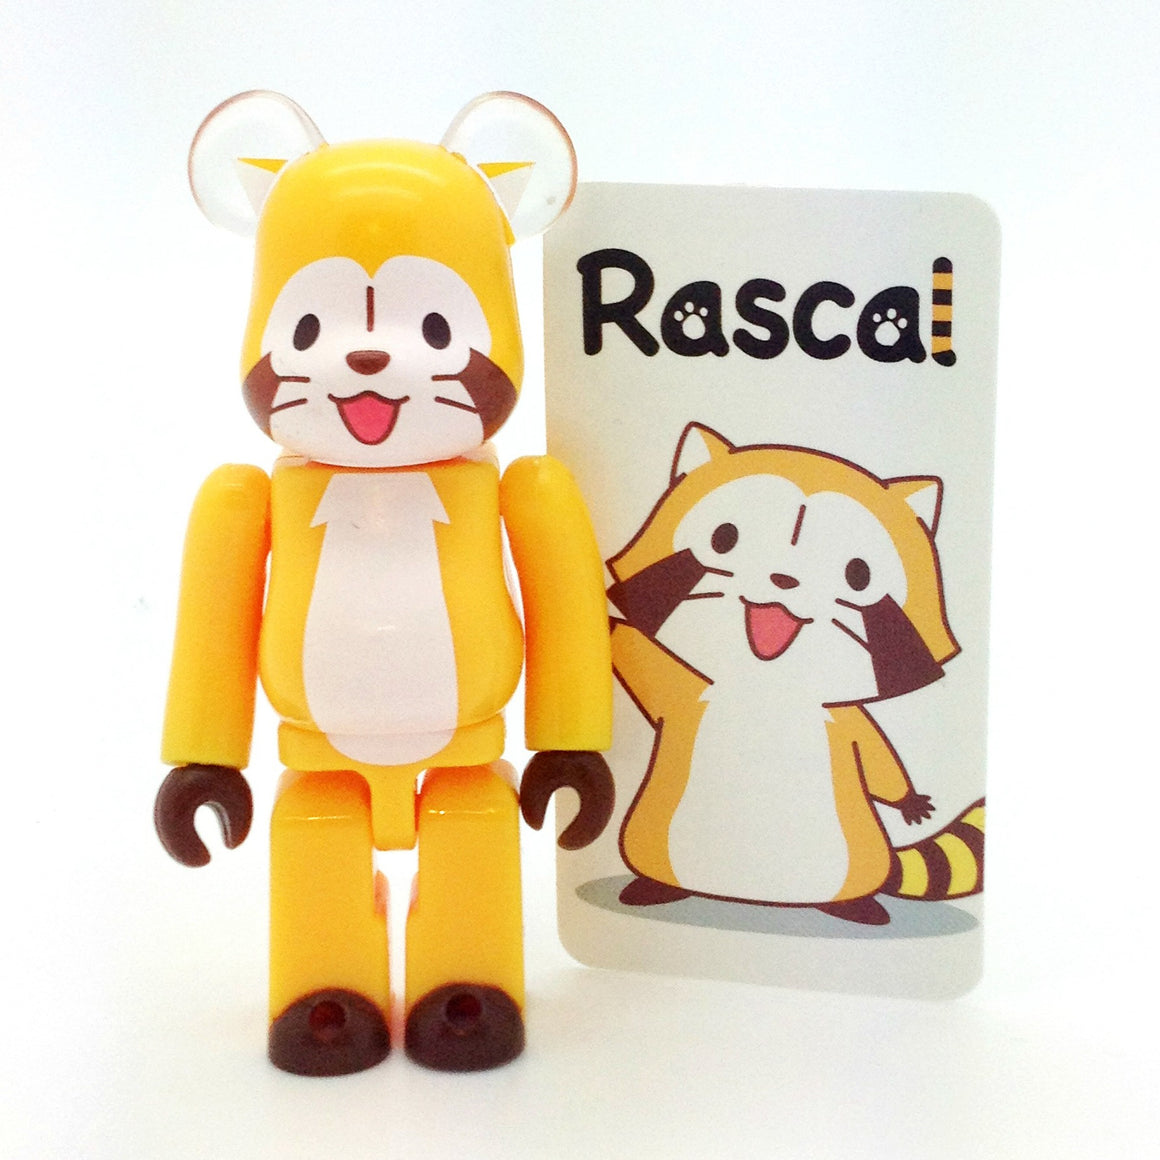 Bearbrick Series 30 - Rascal (Cute) - Mindzai  - 1